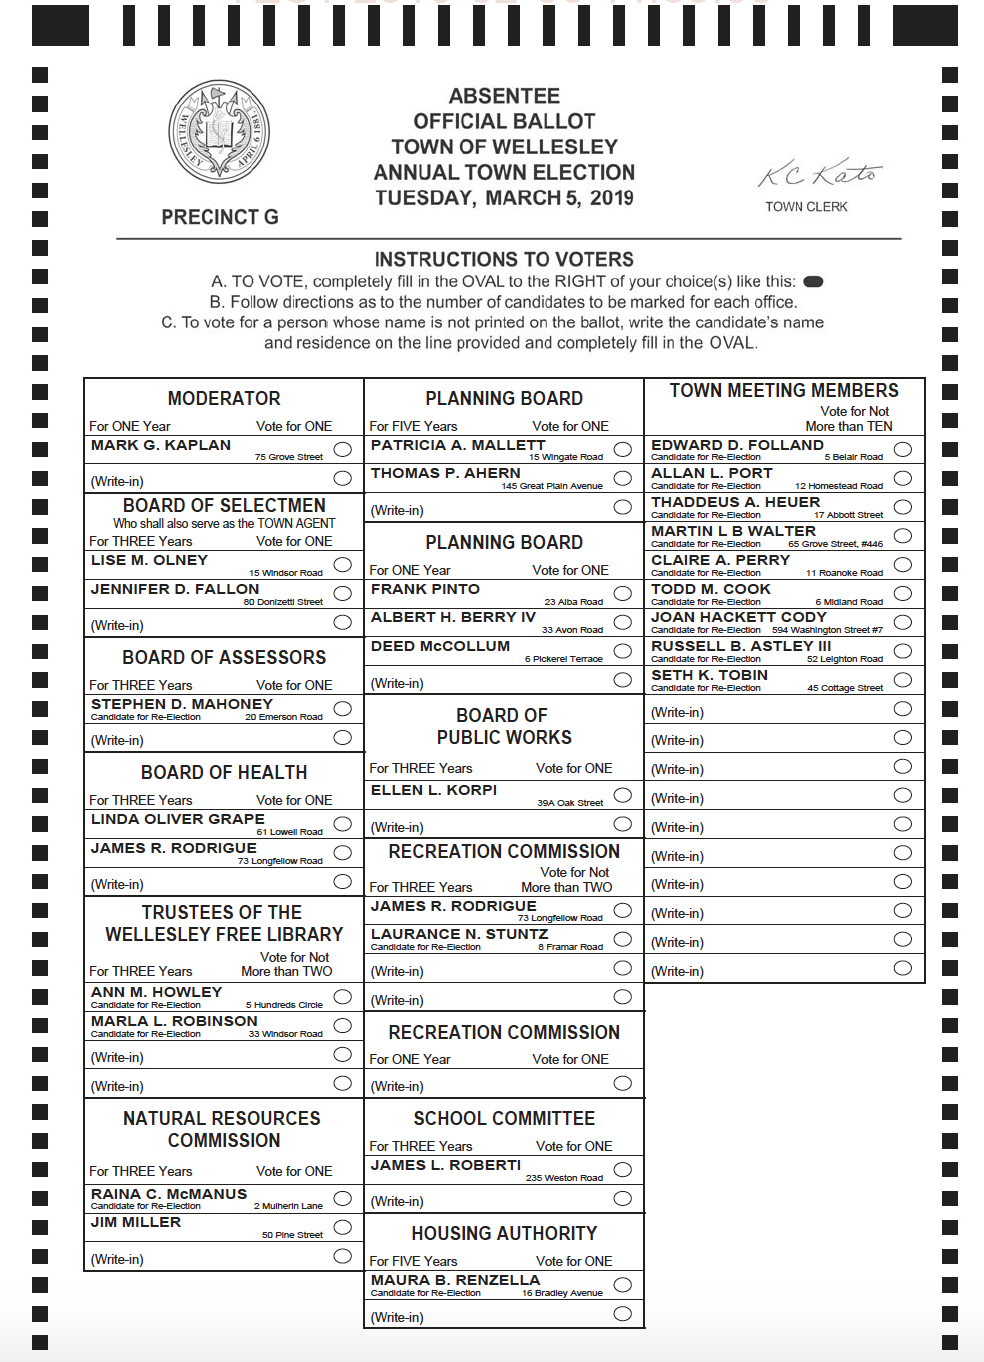 Sample Wellesley 2019 ballot